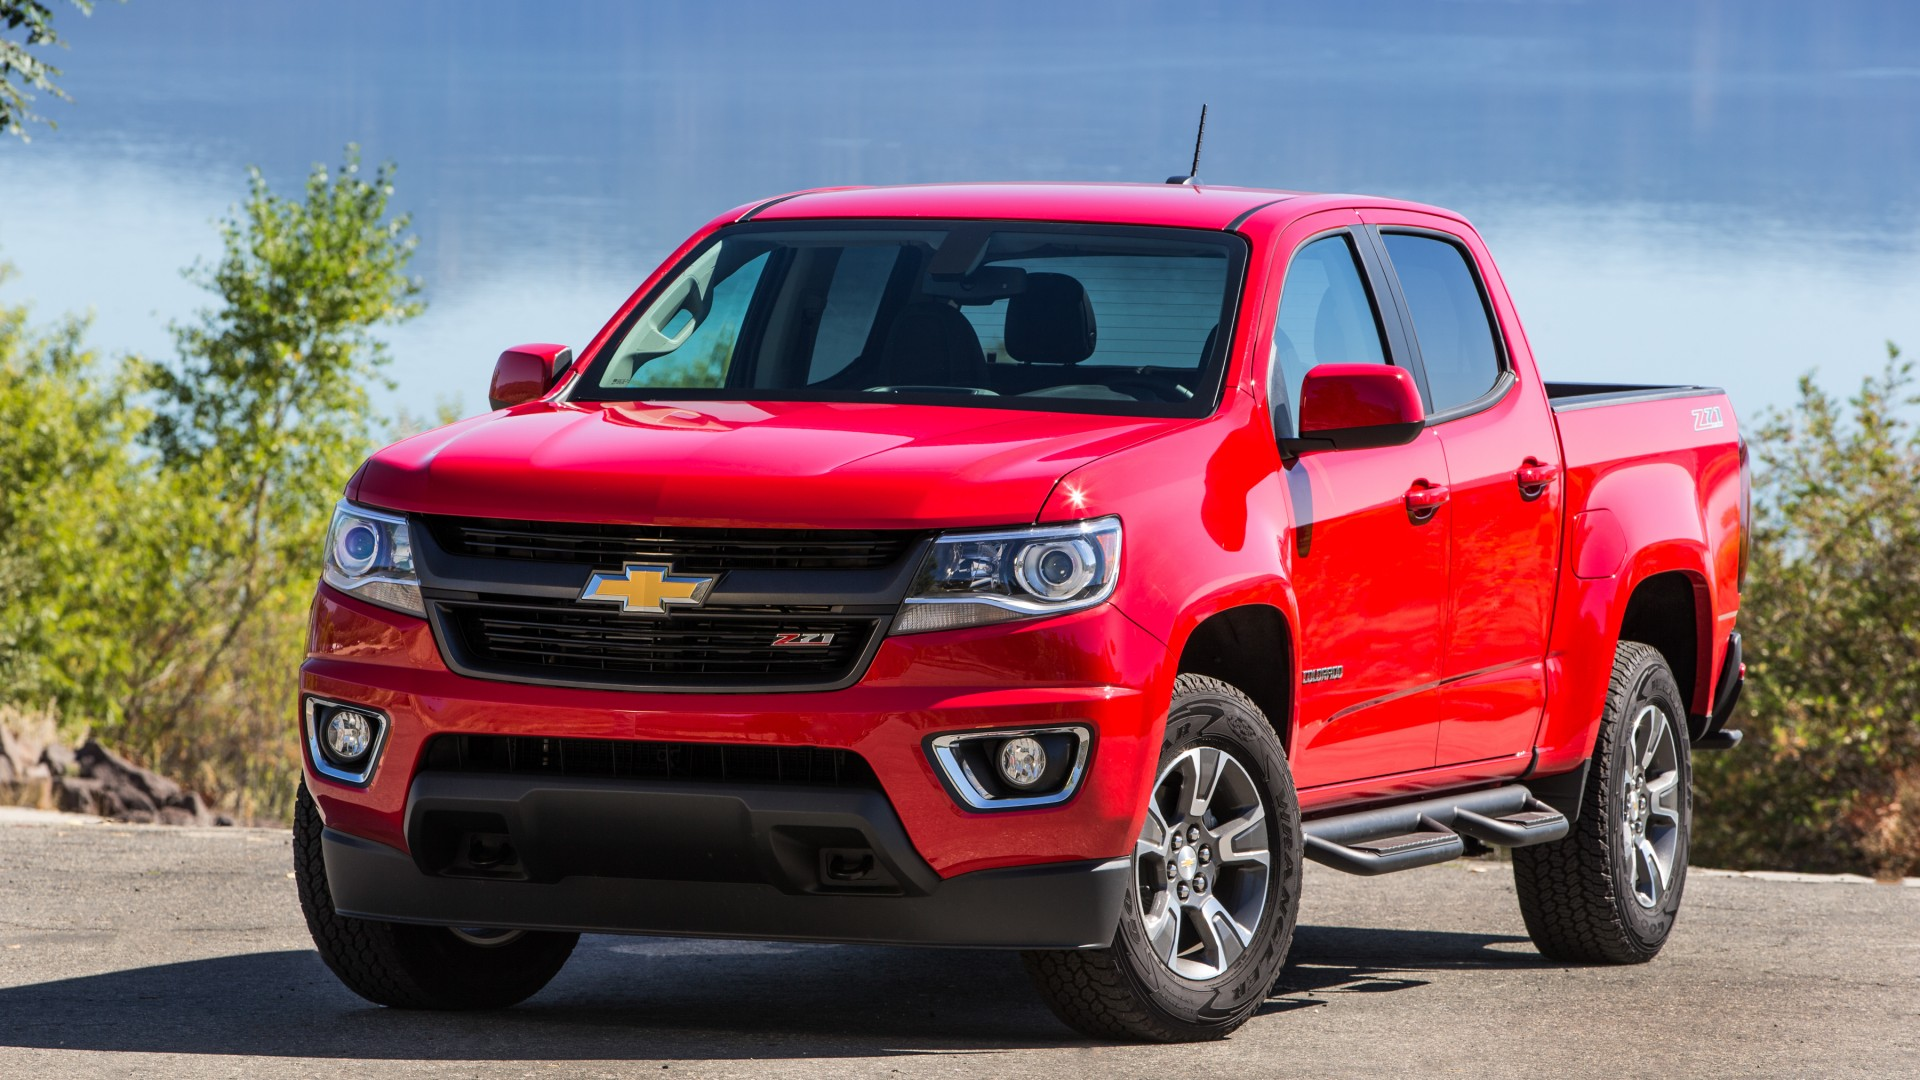 Chevrolet Colorado, Chevy, GMC Canyon, pickup, truck, review, test drive, buy, rent (horizontal)